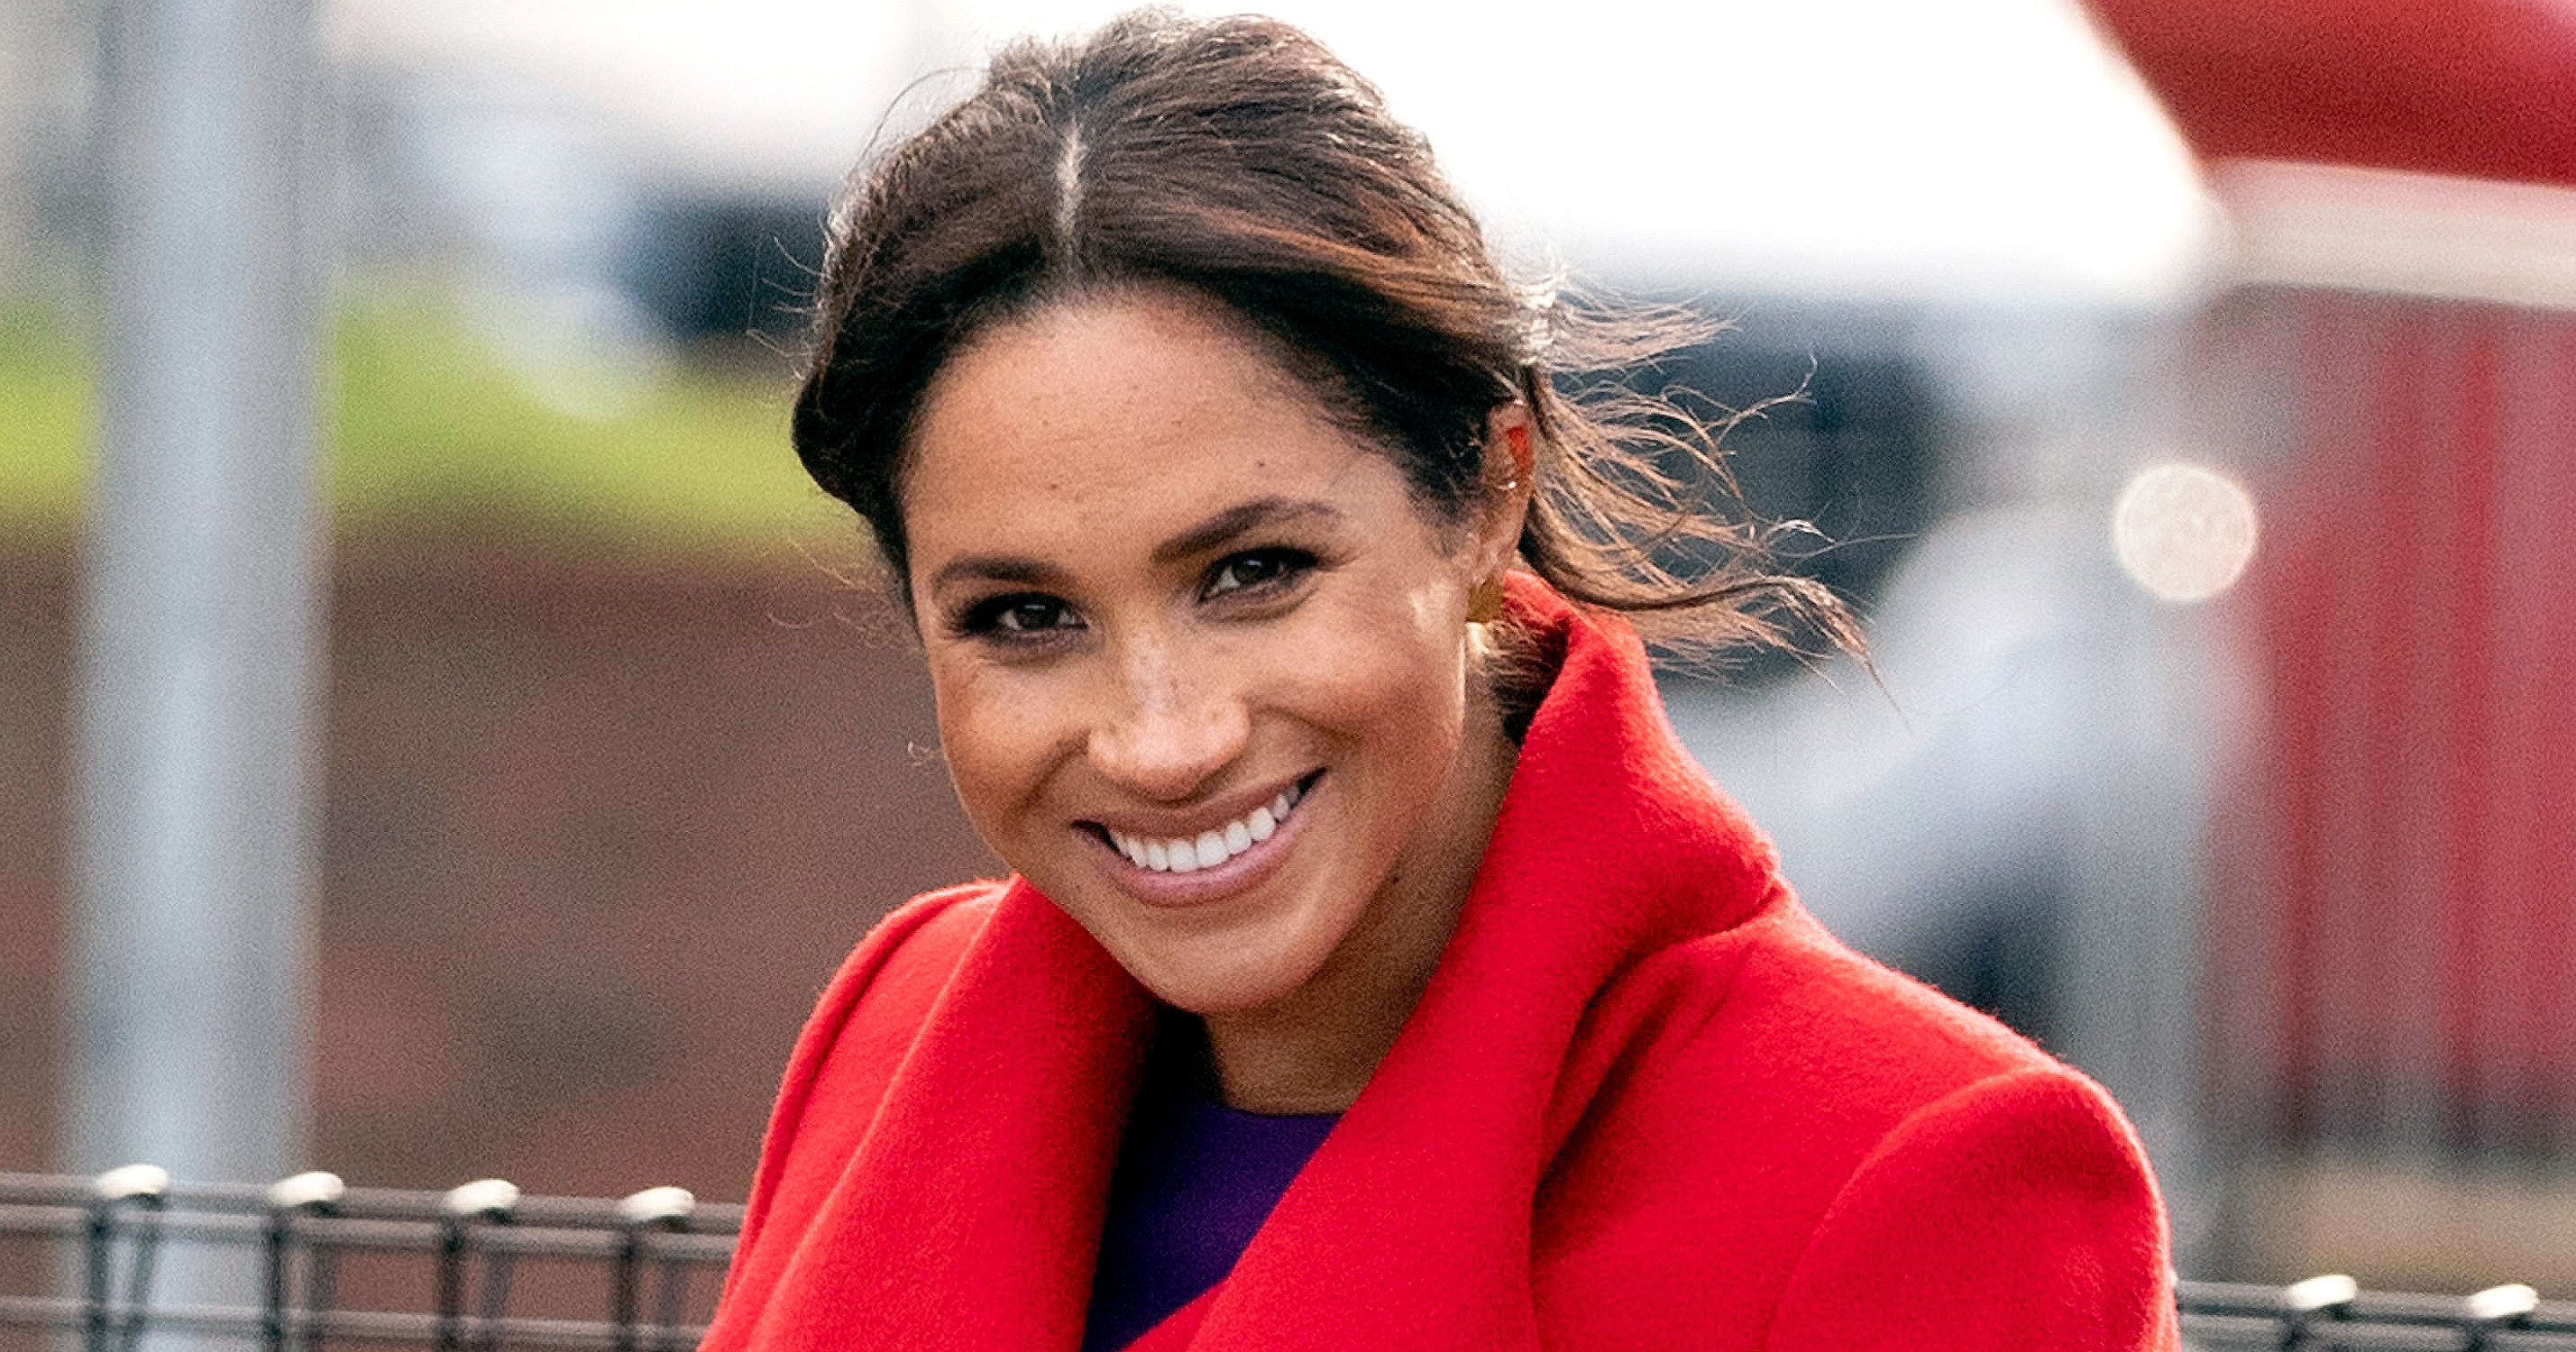 Duchess Meghan's Makeup Artist Daniel Martin Calls Her the 'Avocado Toast Whisperer' After Weekend Visit